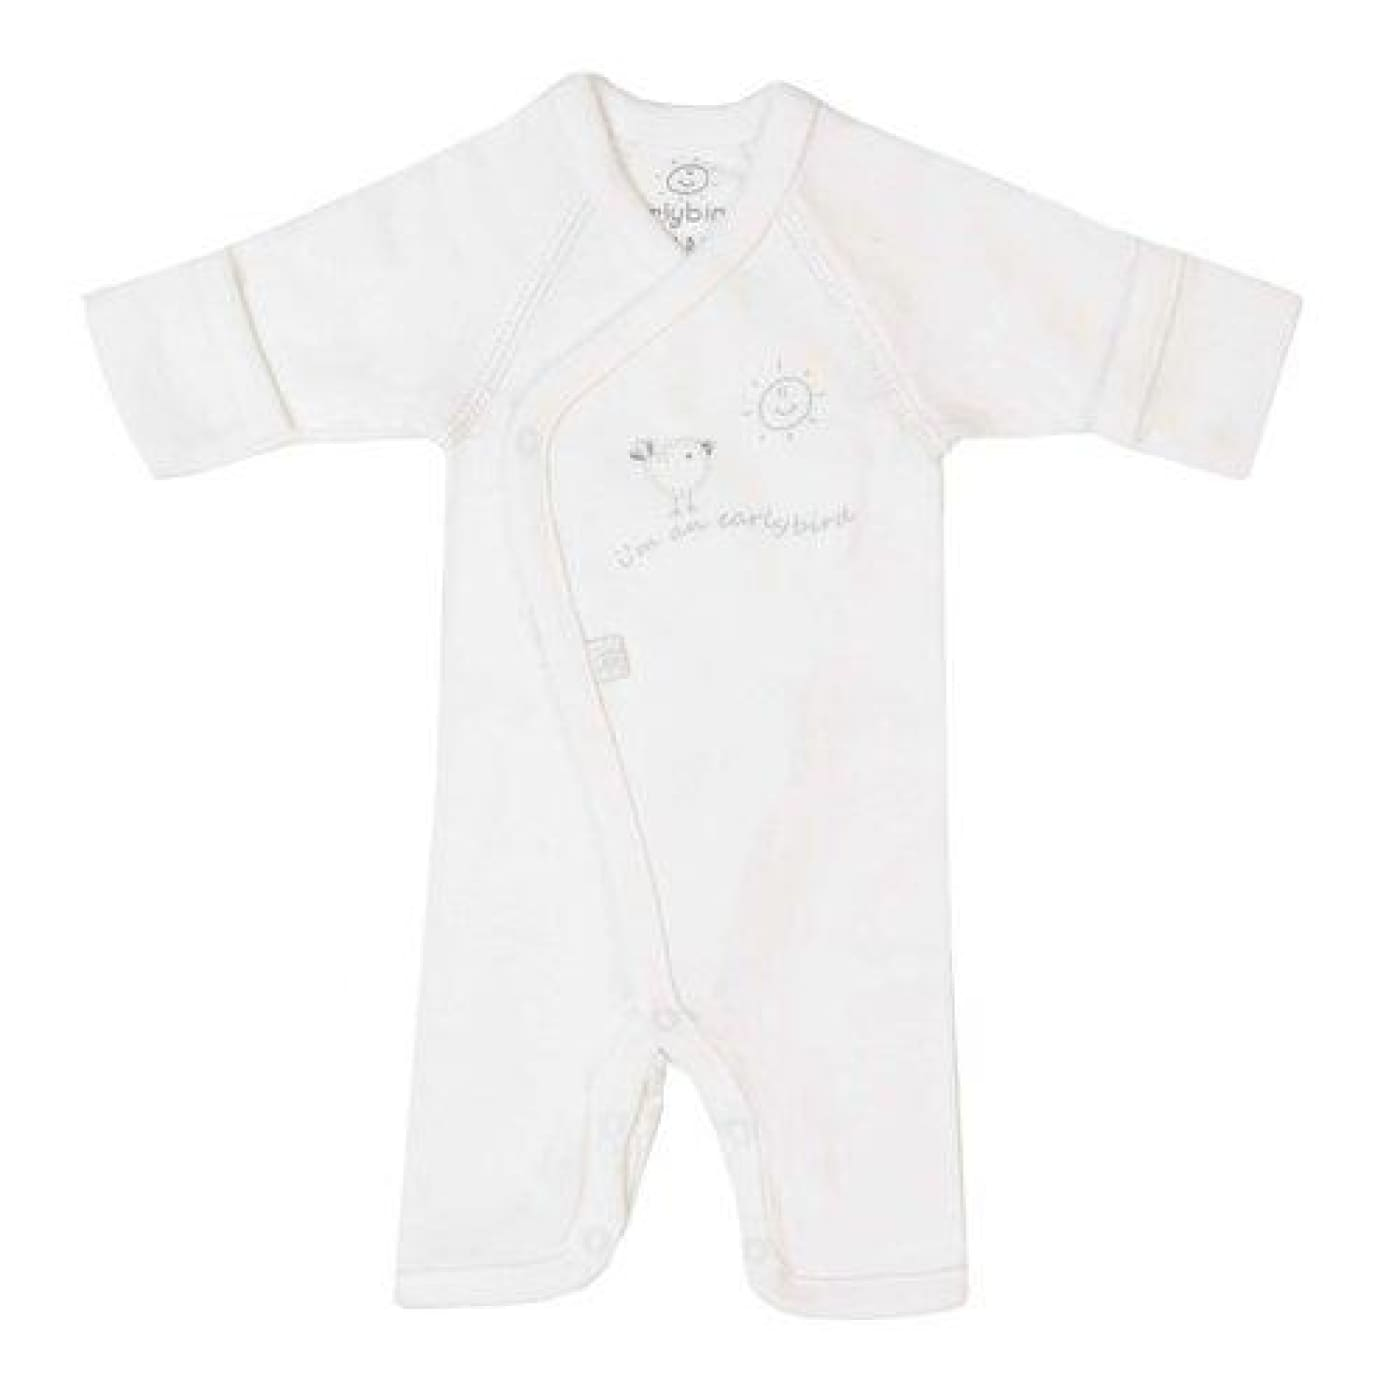 Earlybirds Jumpsuit - Ivory M - BABY & TODDLER CLOTHING - BODYSUITS/SETS/MIX-MATCH